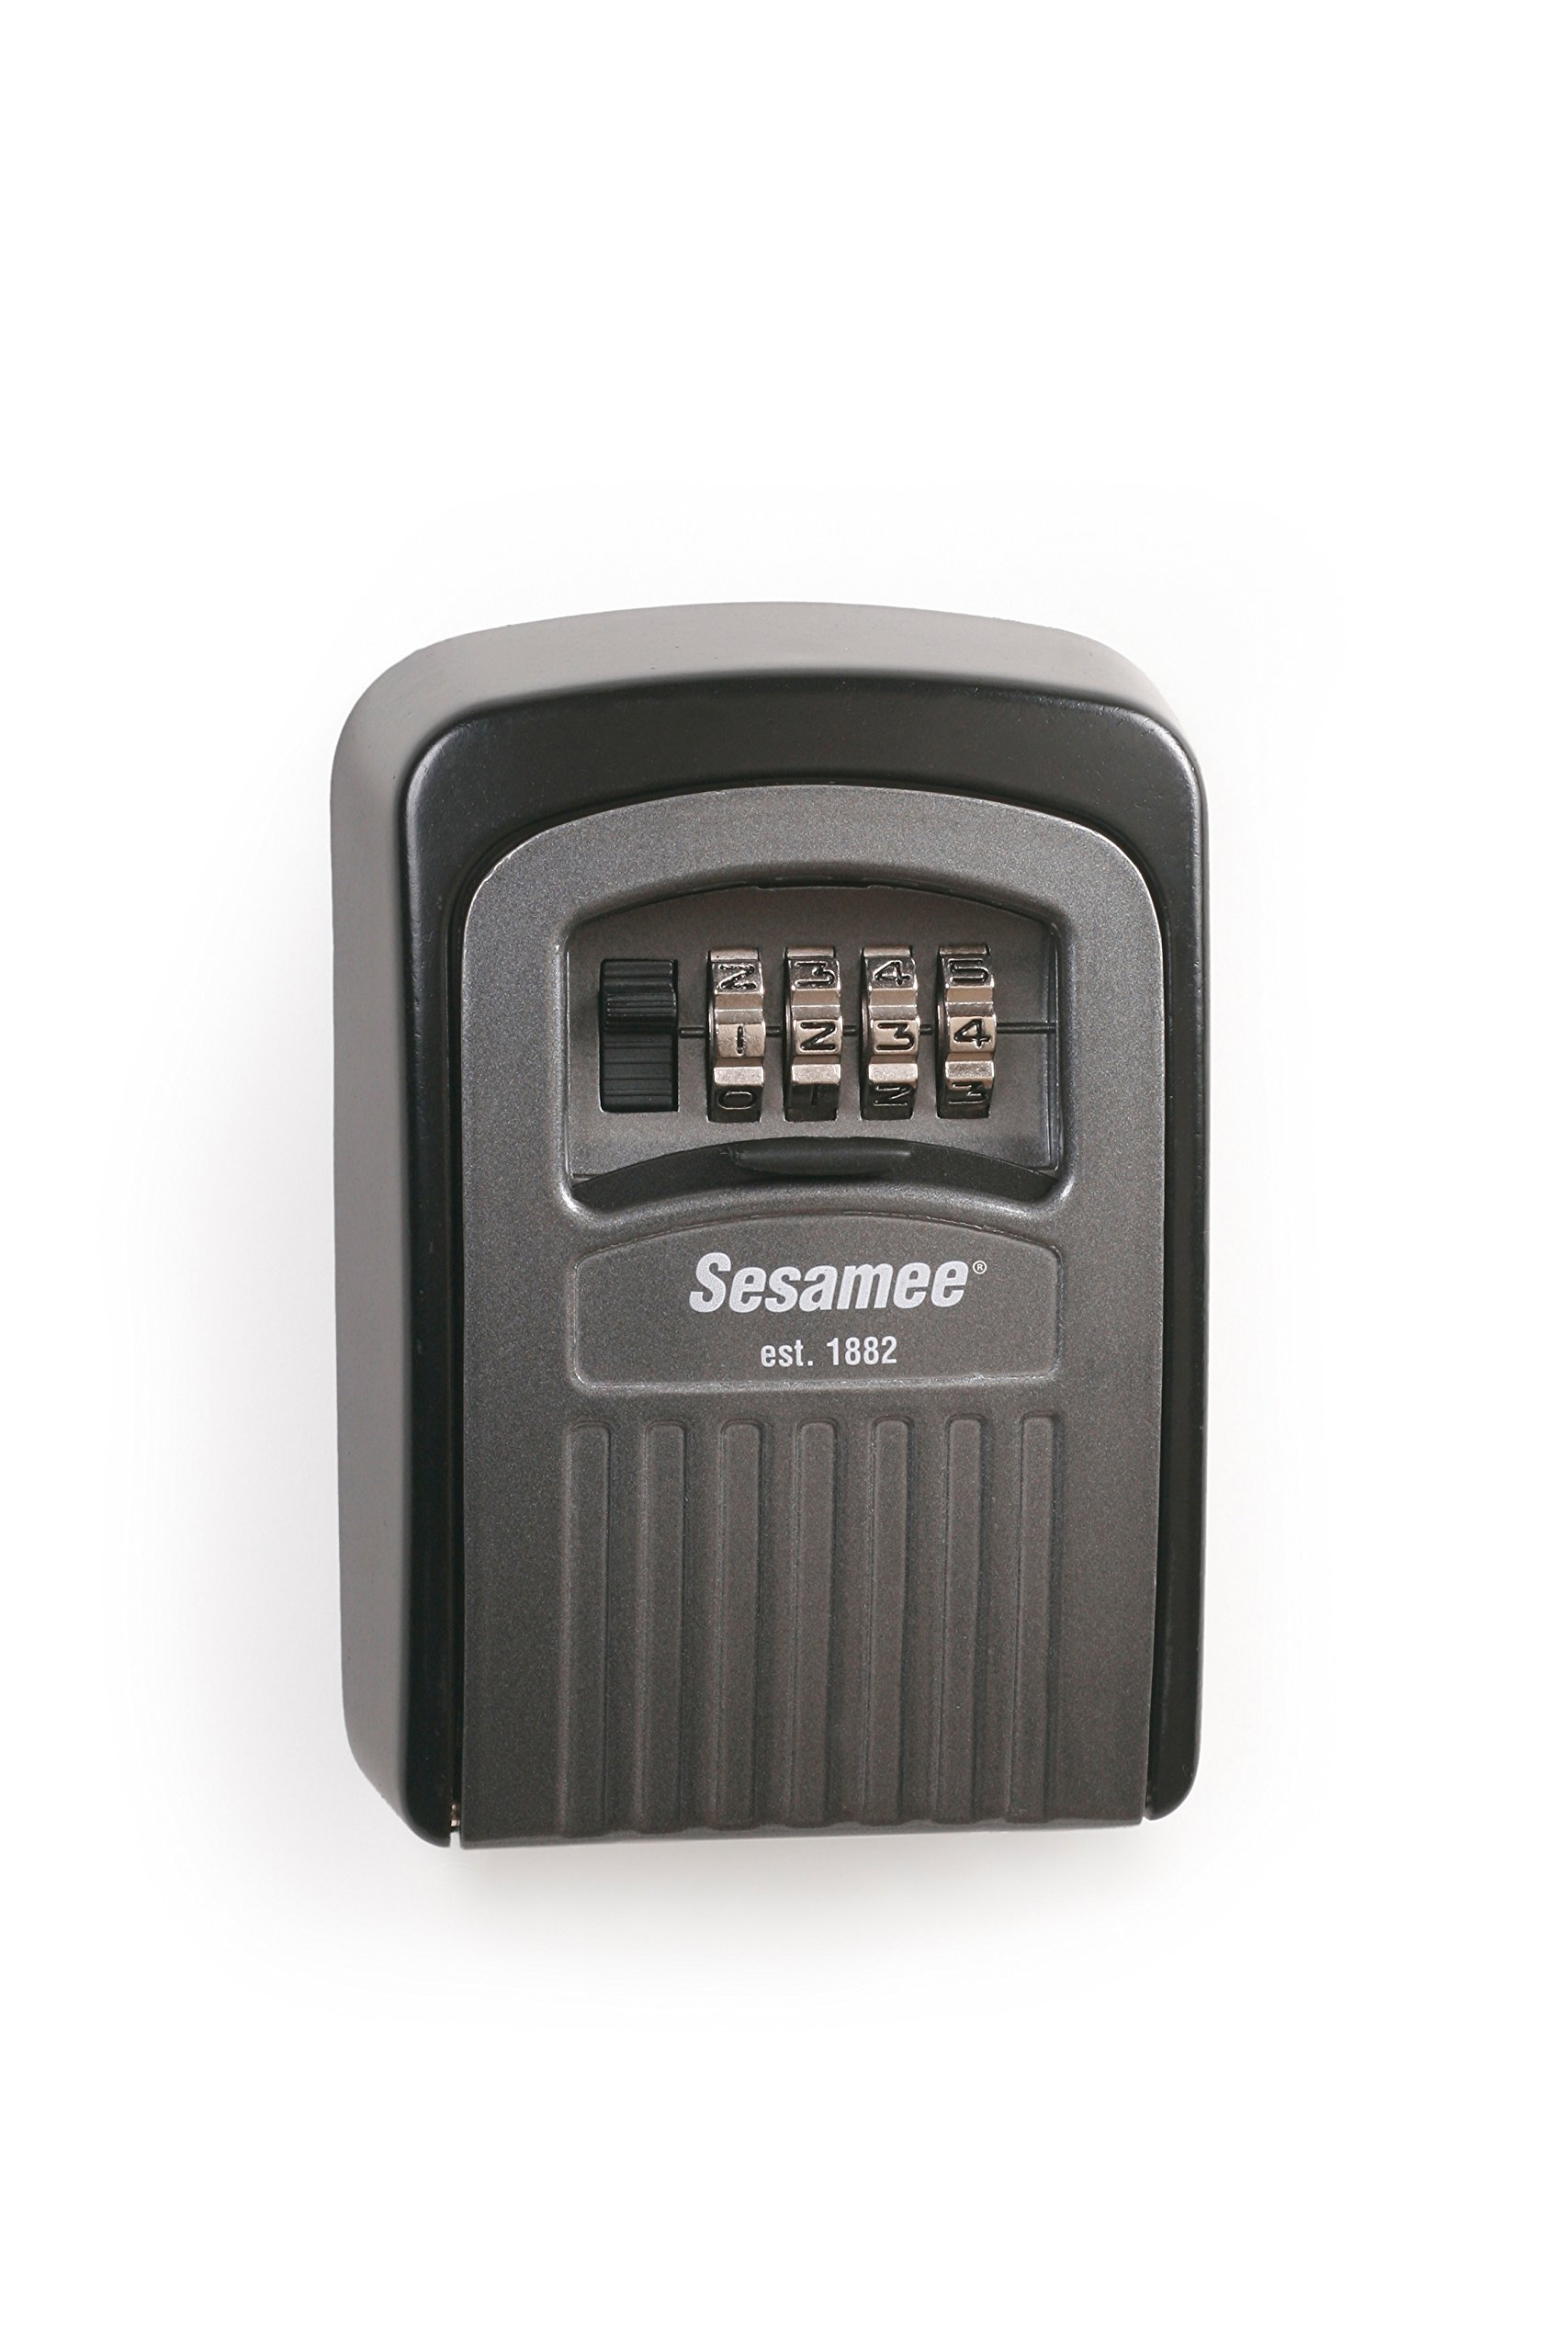 Sesamee 96008 Resettable Dial Combination Storage Lock Permanent with 10,000 Potential Combinations